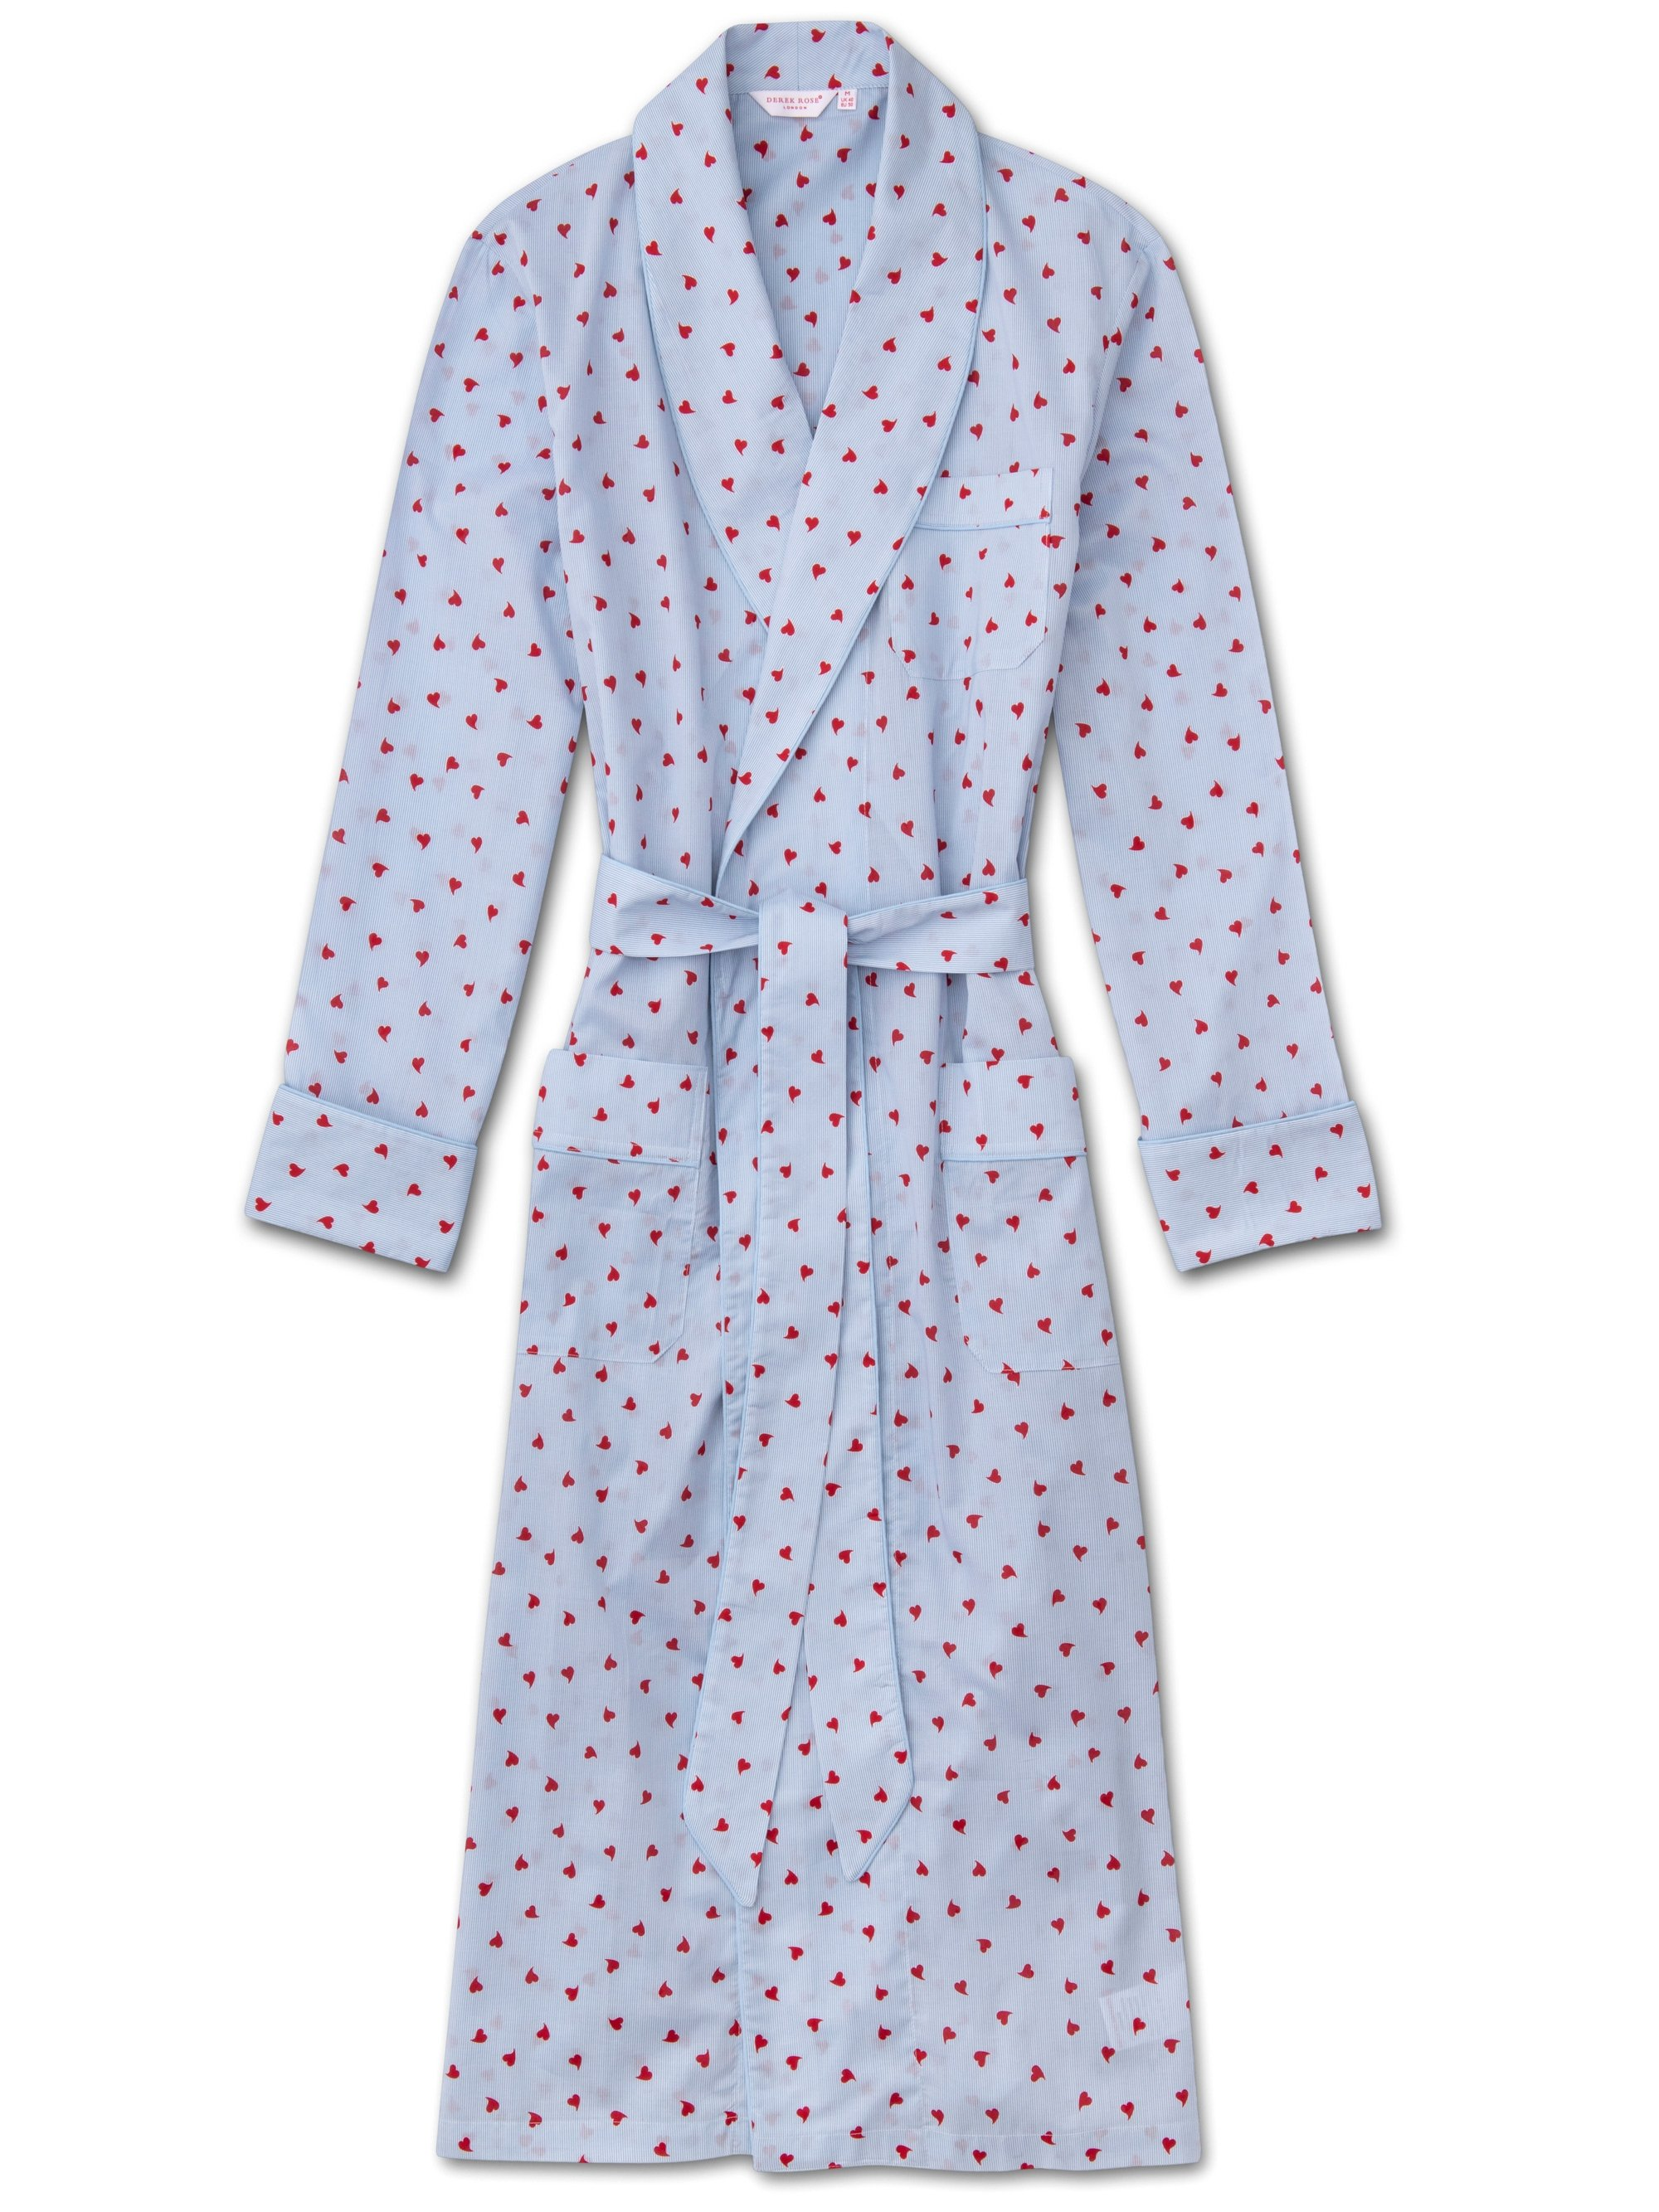 Men's Piped Dressing Gown Nelson 75 Cotton Batiste Blue